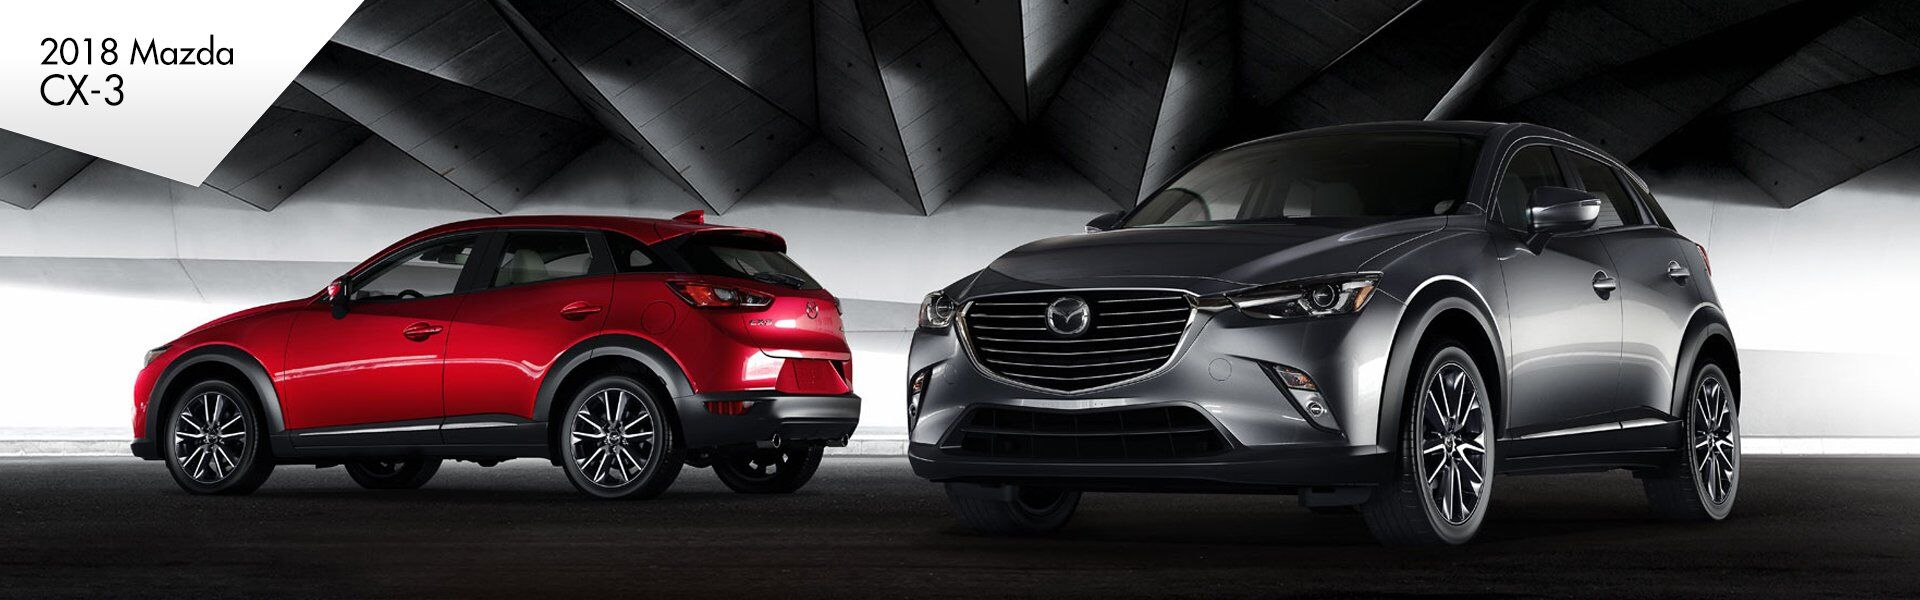 The New CX-3 at Crown Mazda